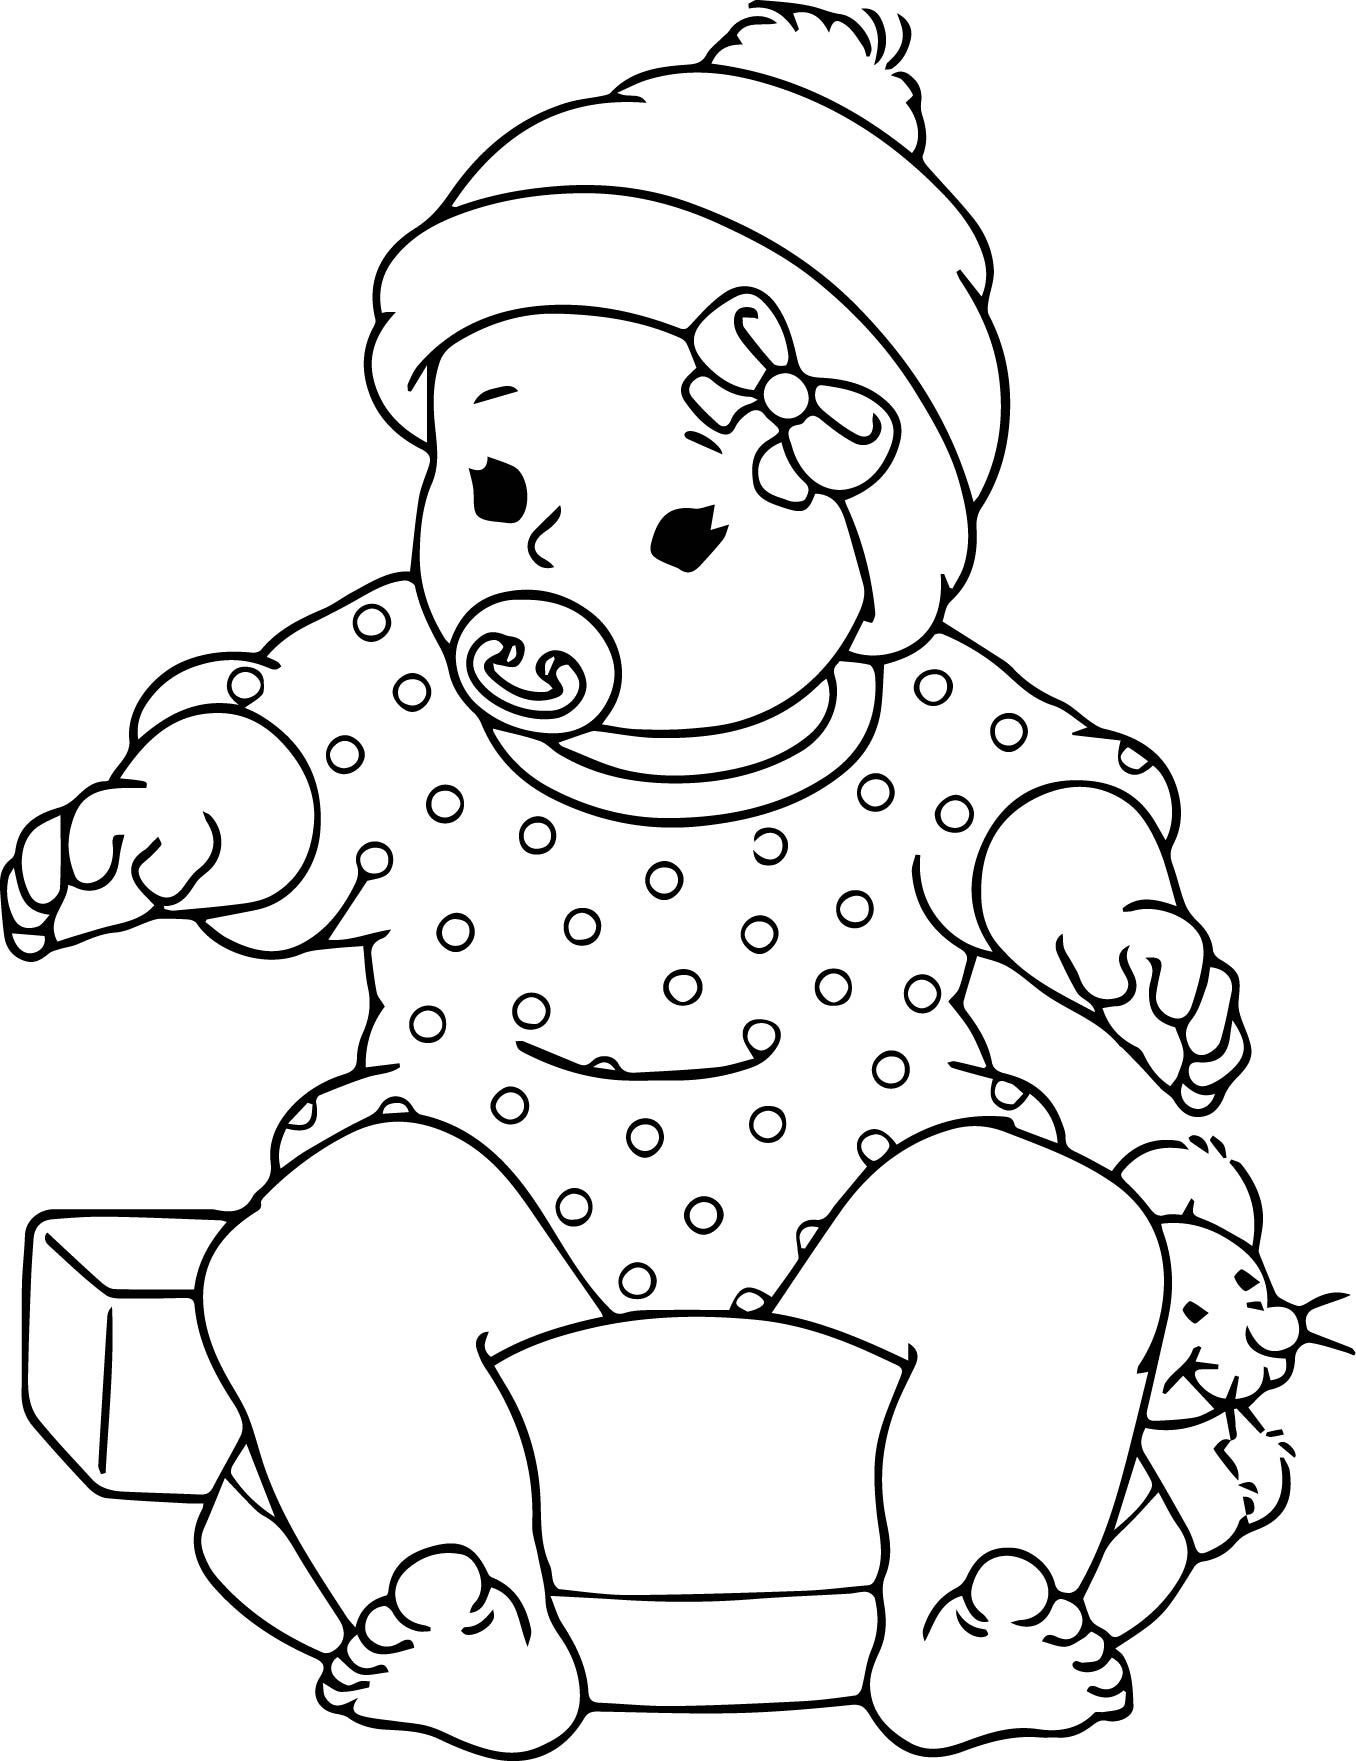 Free Printable Baby Doll Coloring Pages Throughout Inside Baby